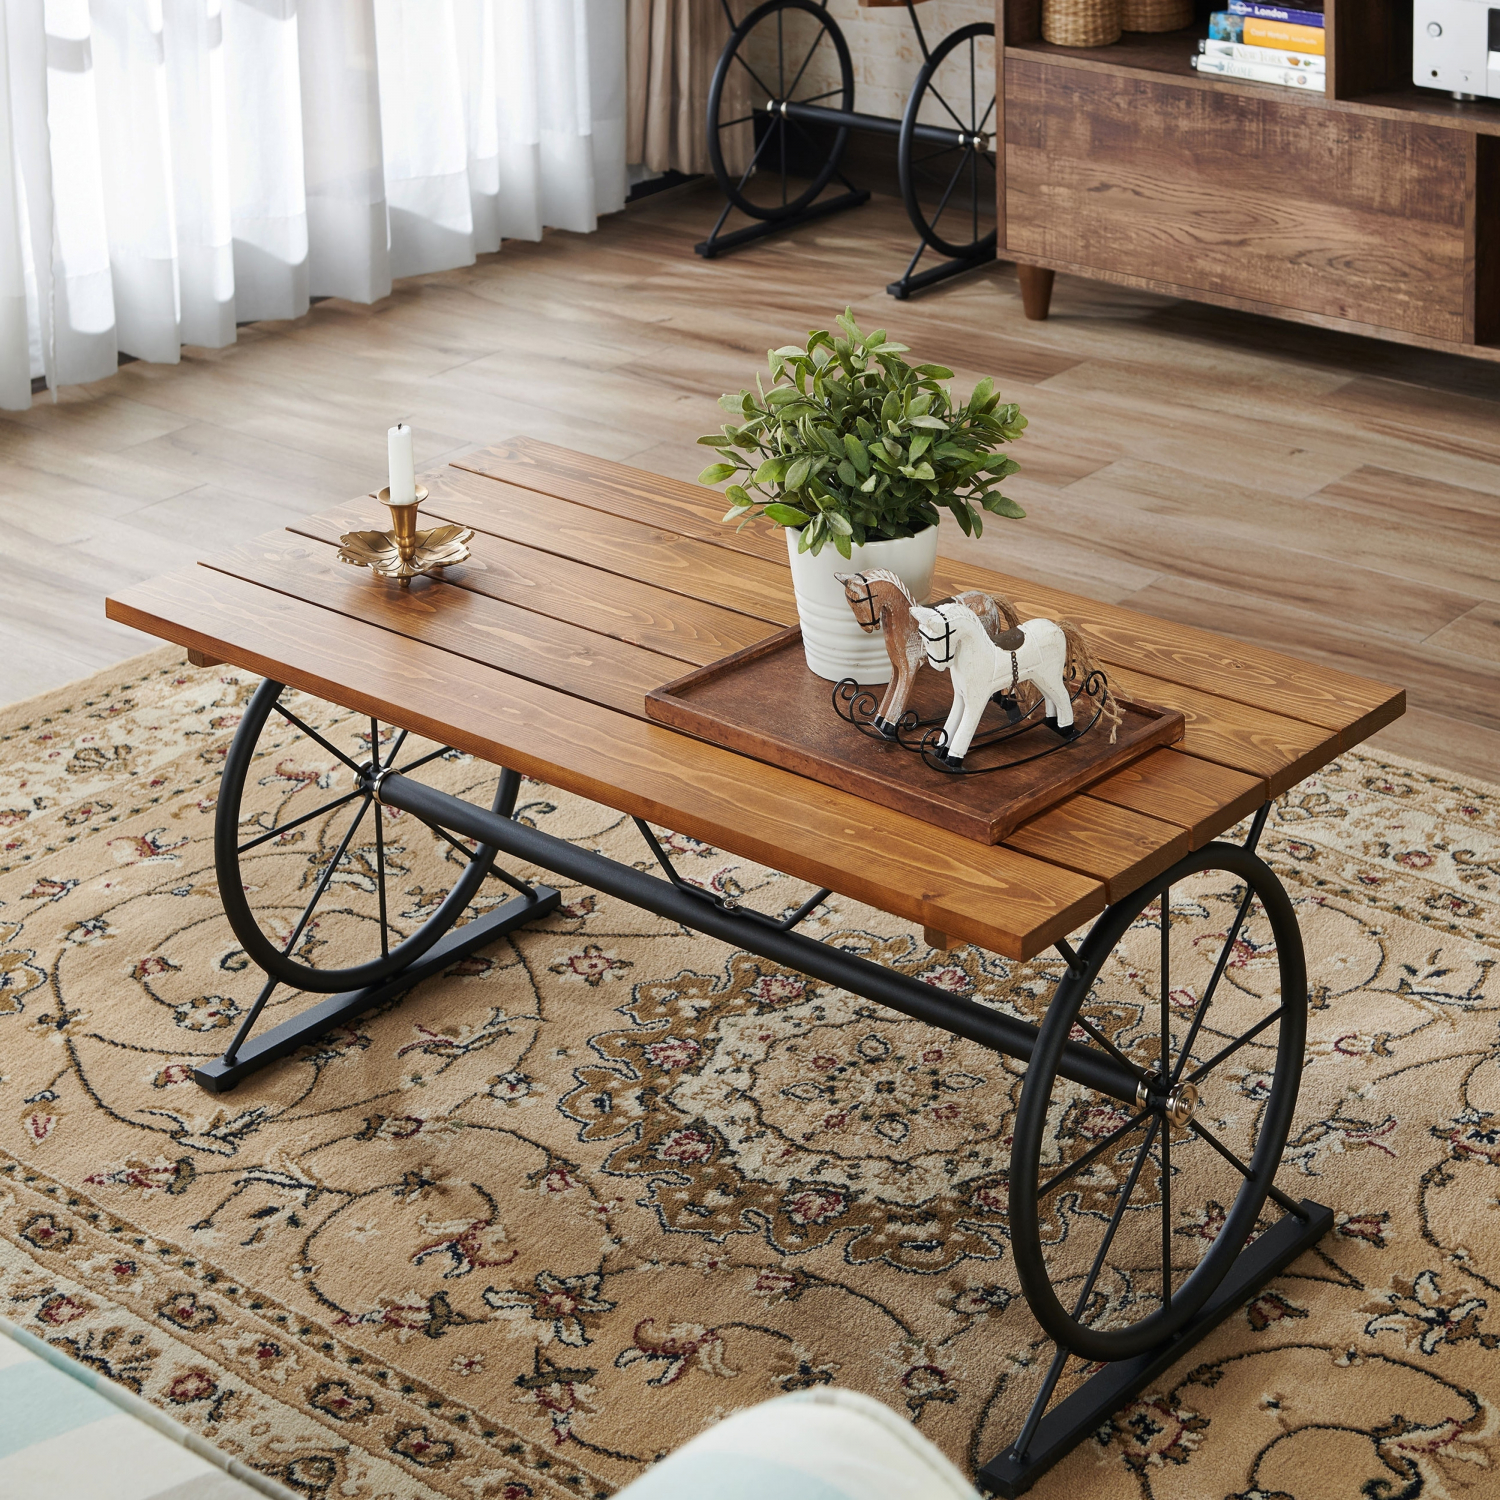 Rustic Wagon Wheel Coffee Table Planked Wood Top Metal Base Sturdy Ez Assembly Ebay